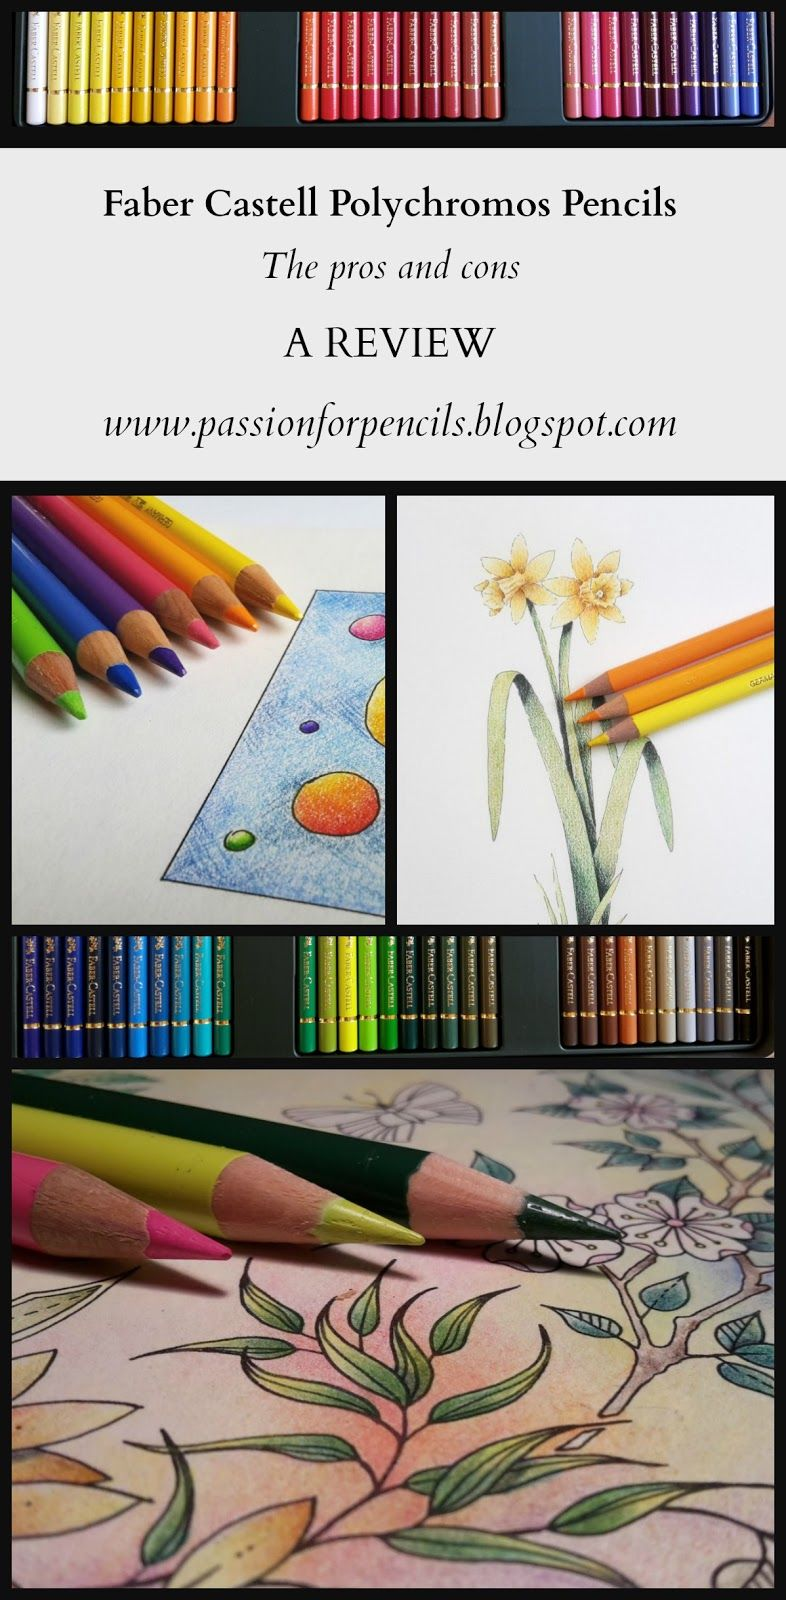 Passion For Pencils Review Faber Castell Polychromos Pencils